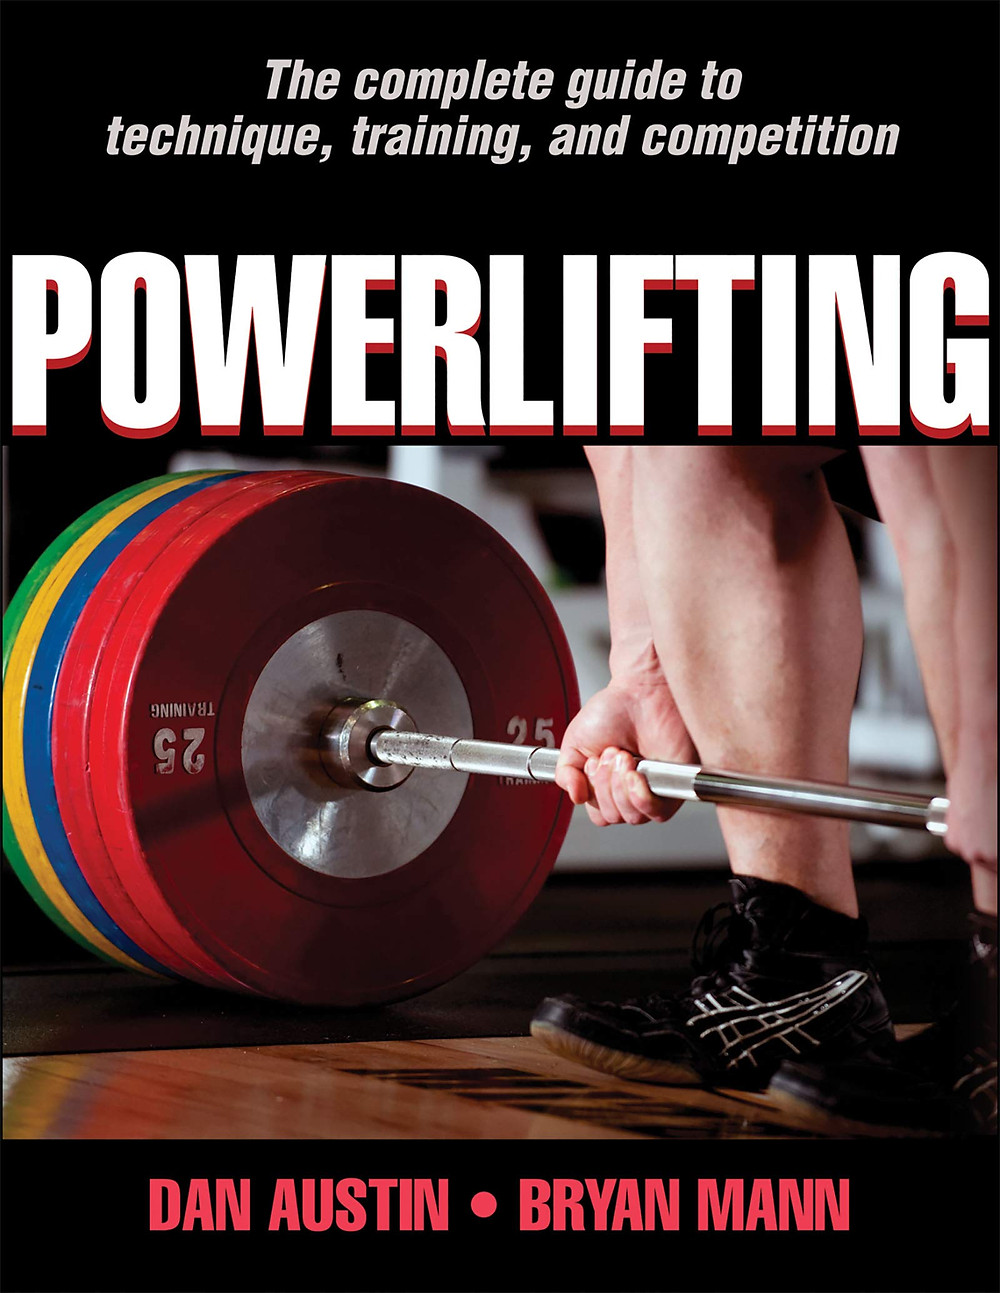 Powerlifting Book by Dan Austin and Bryan Mann... Awesome Book!